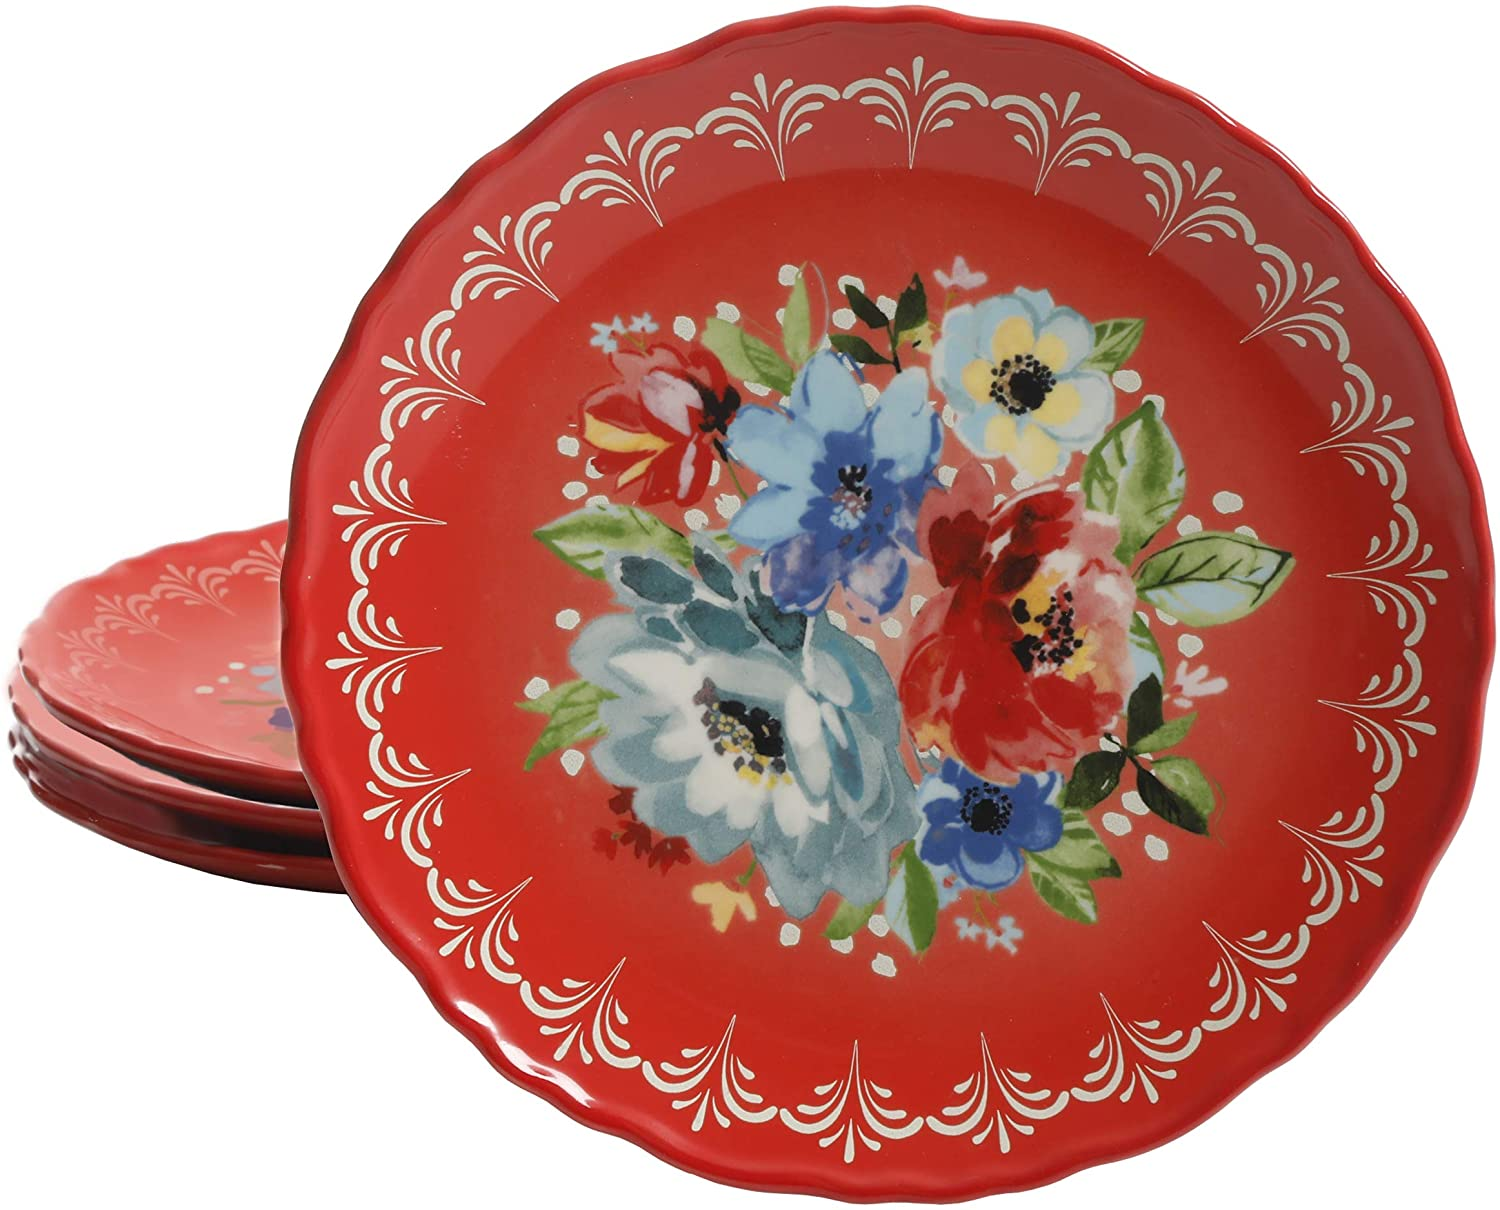 The Pioneer Woman Melody 8.75-Inch Salad Plates, Set of 4